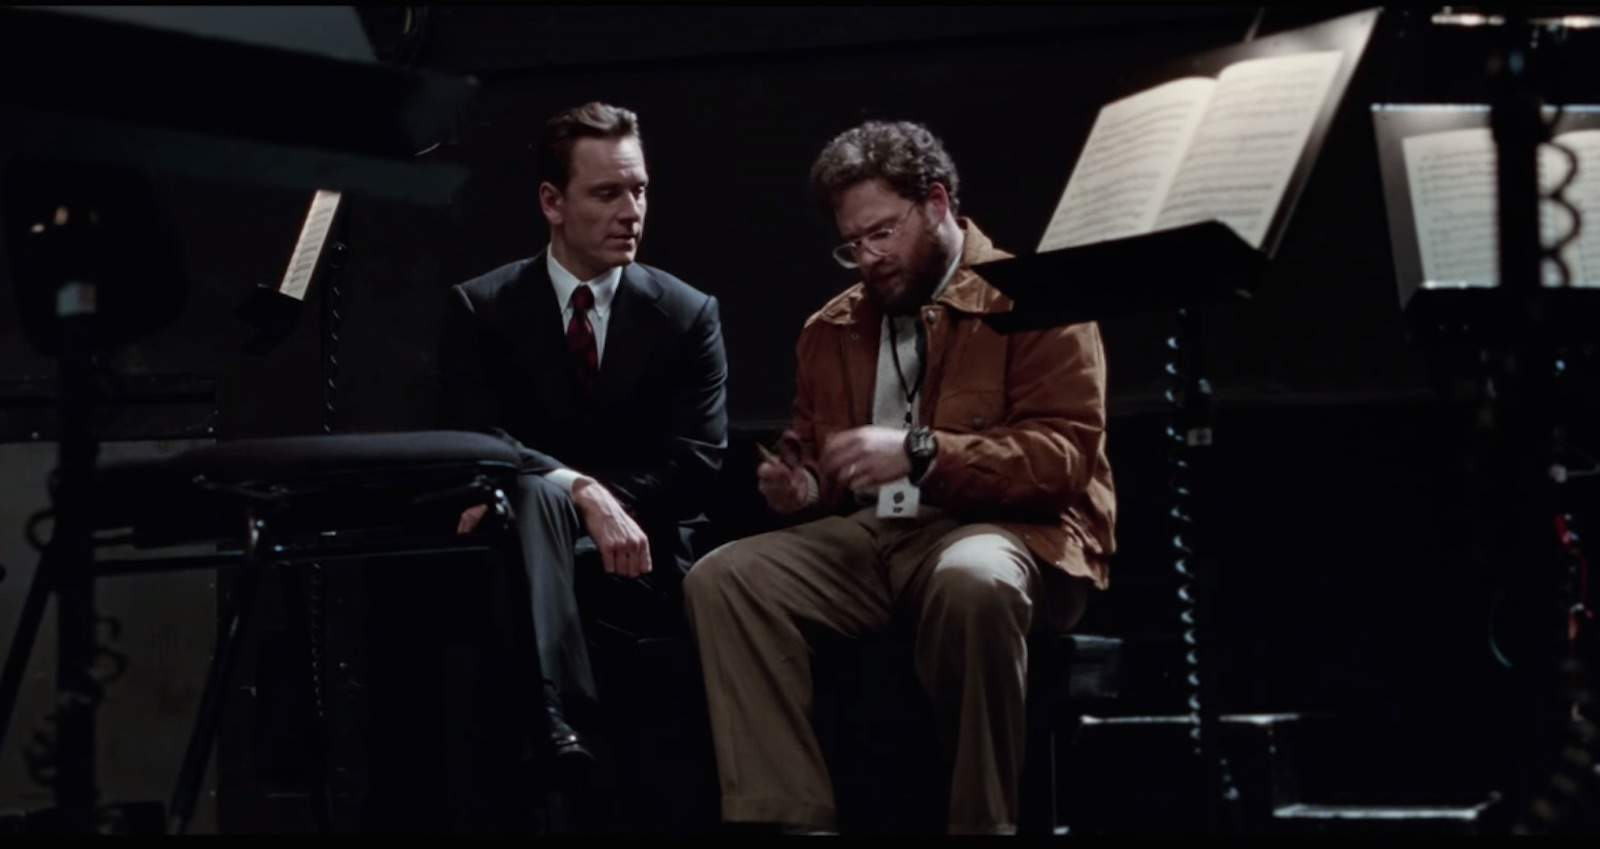 Steve Jobs (played by Michael Fassbender) and Steve Wozniak (Seth Rogen) before a NeXT keynote in a scene from Steve Jobs.